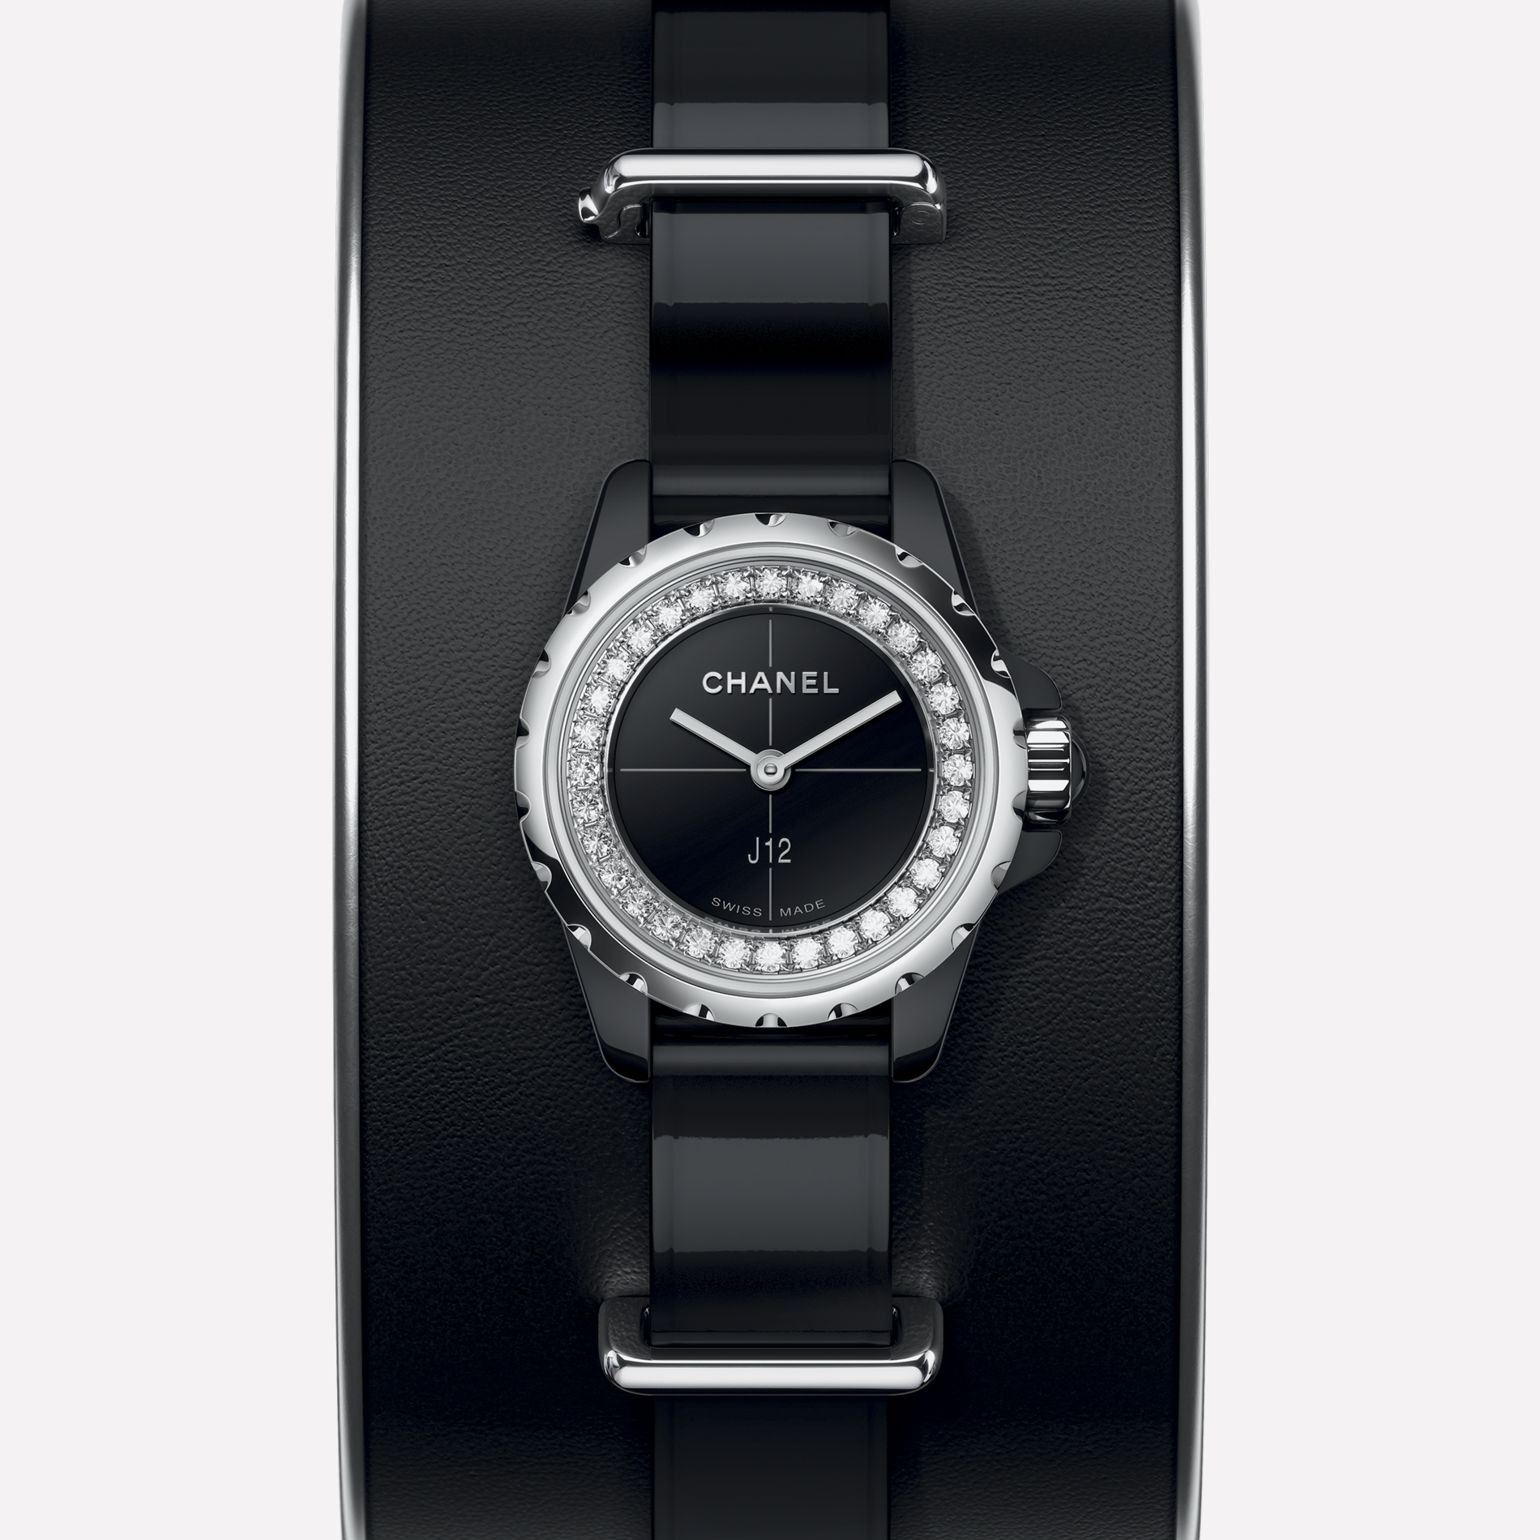 J12·XS Small cuff in black leather, black ceramic and steel, flange set with diamonds